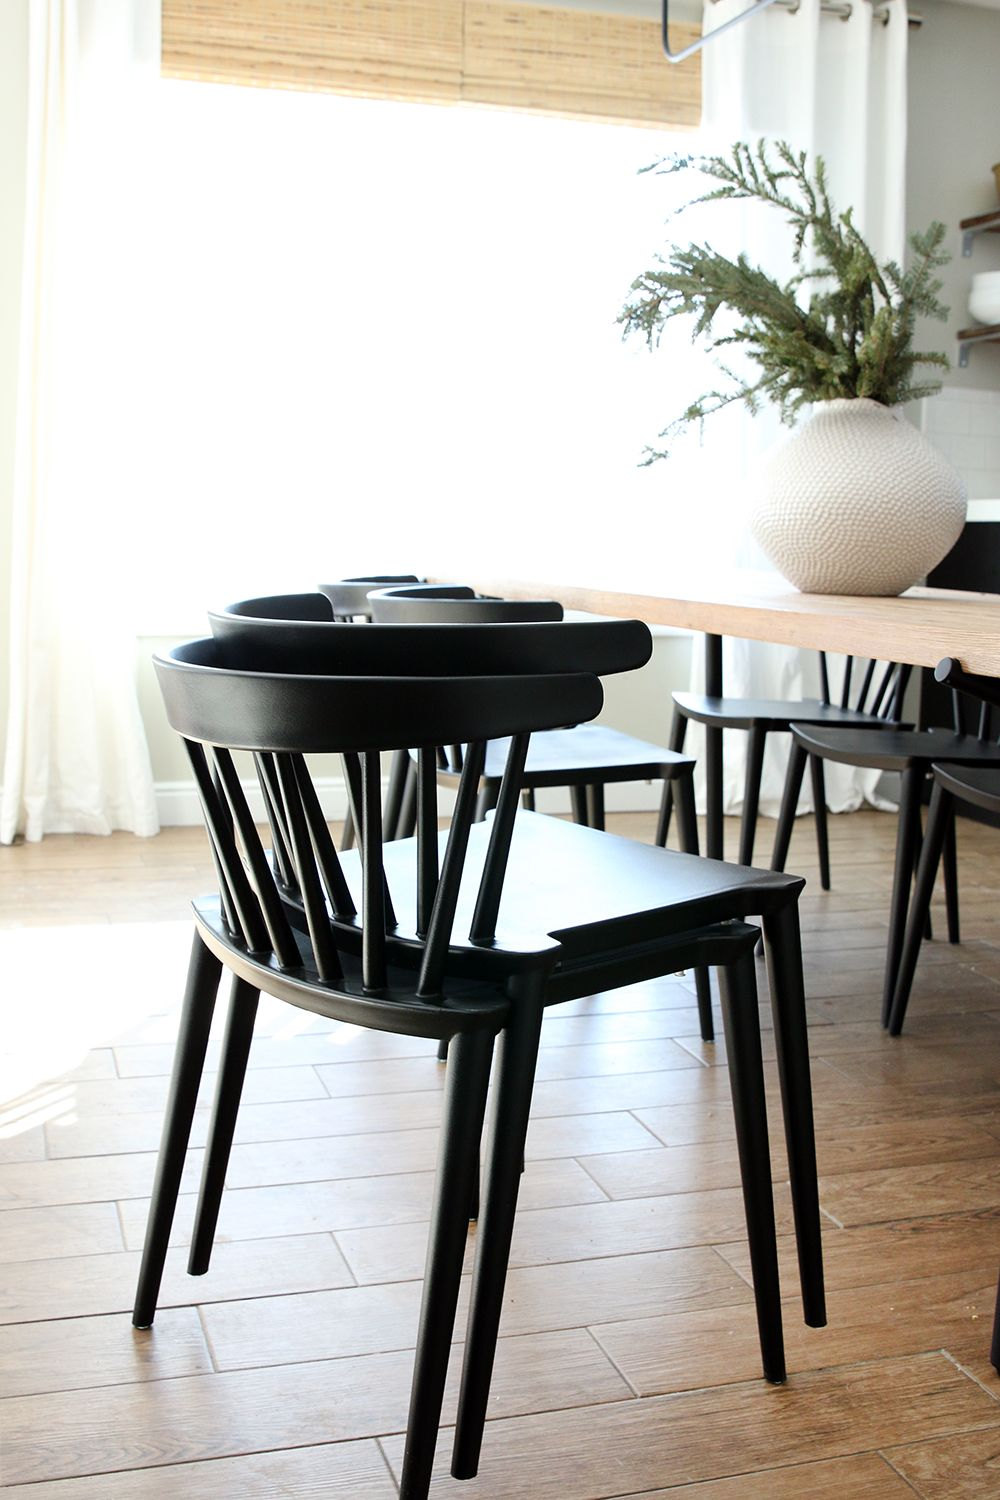 Peachy New Low Back Modern Spindle Chairs For The Dining Room Beatyapartments Chair Design Images Beatyapartmentscom